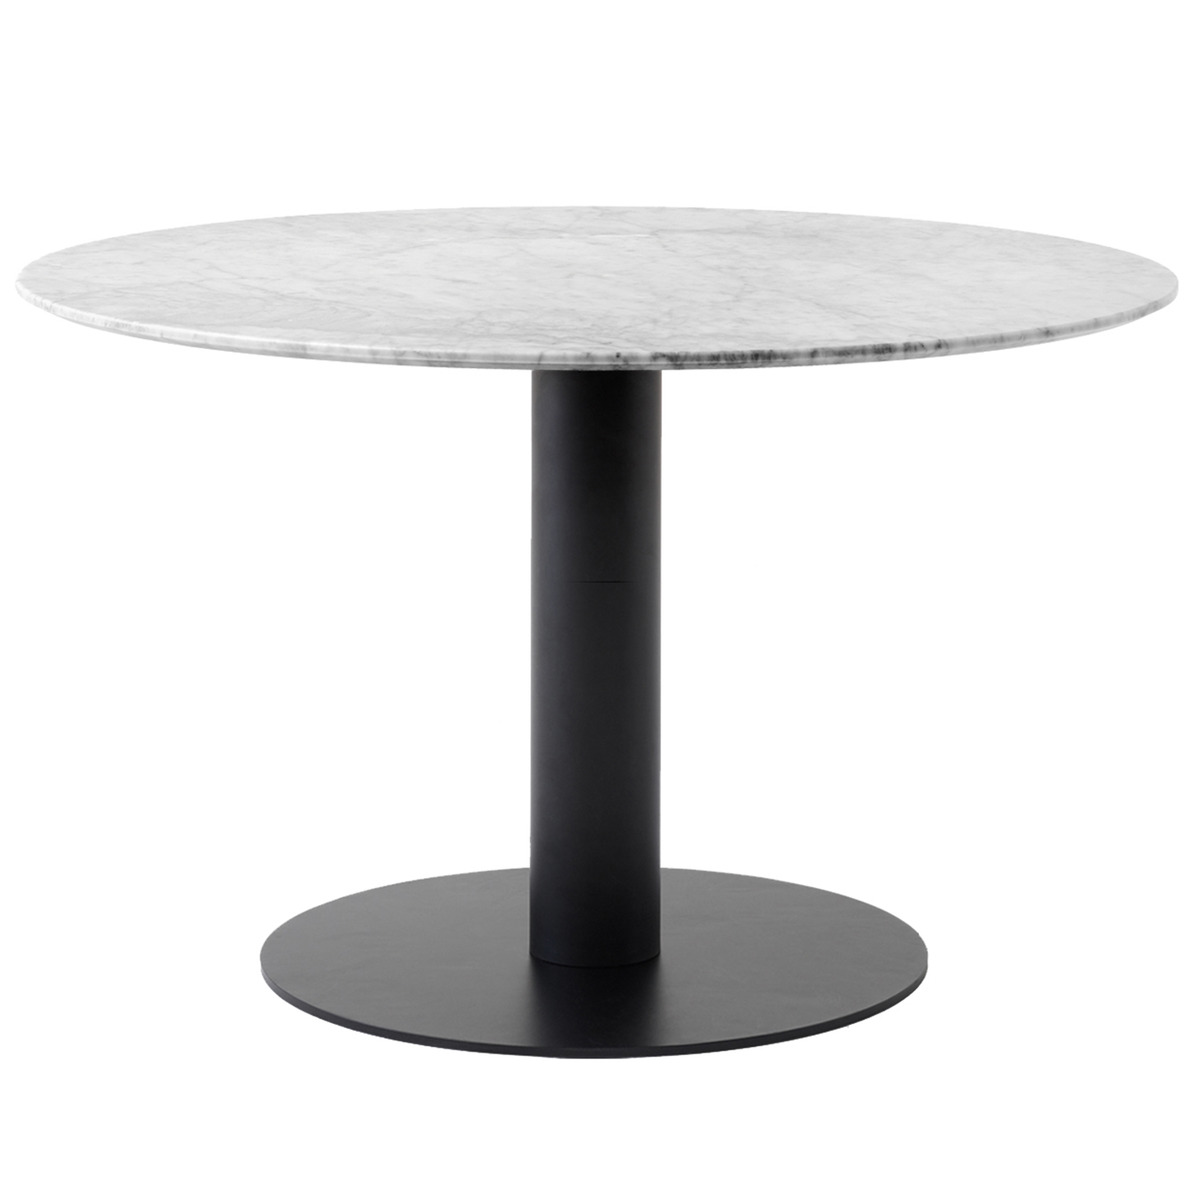 Tradition In Between Sk19 Table Black White Marble Finnish Design Shop